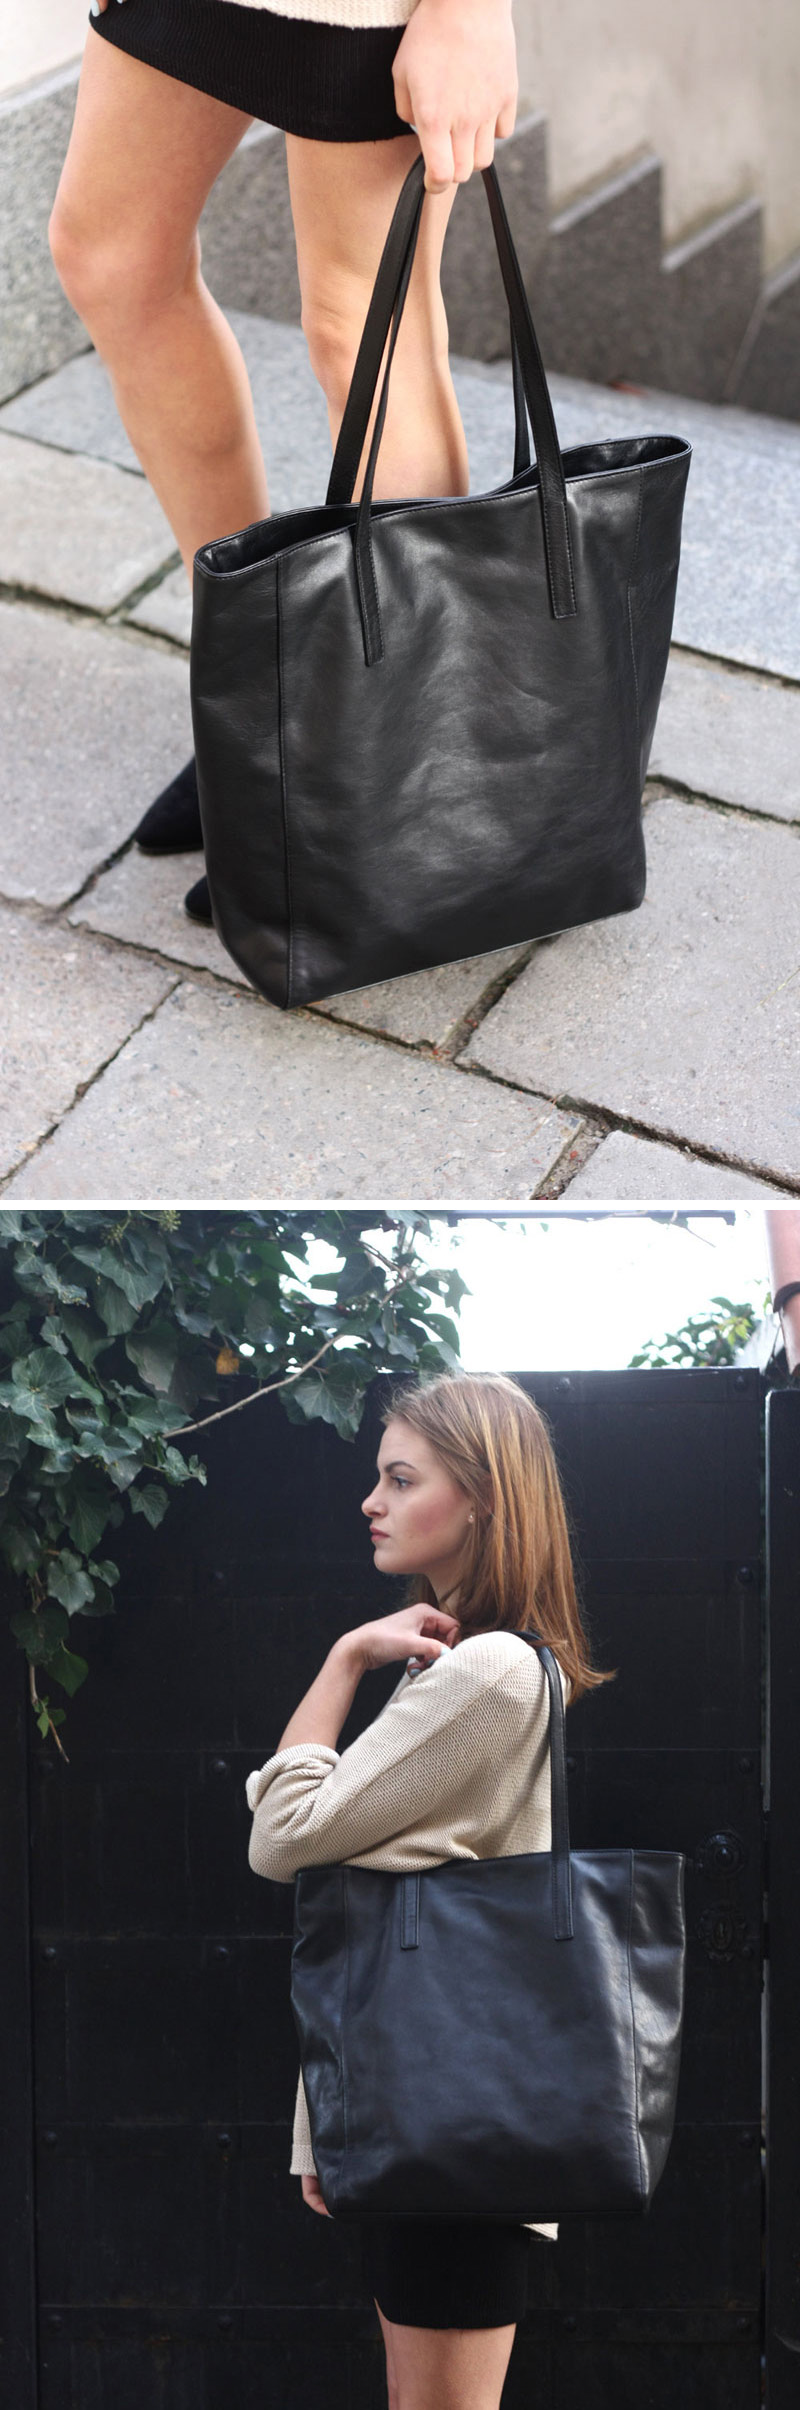 573eada645e7 Throw this modern black leather tote over your shoulder and your look is  complete.